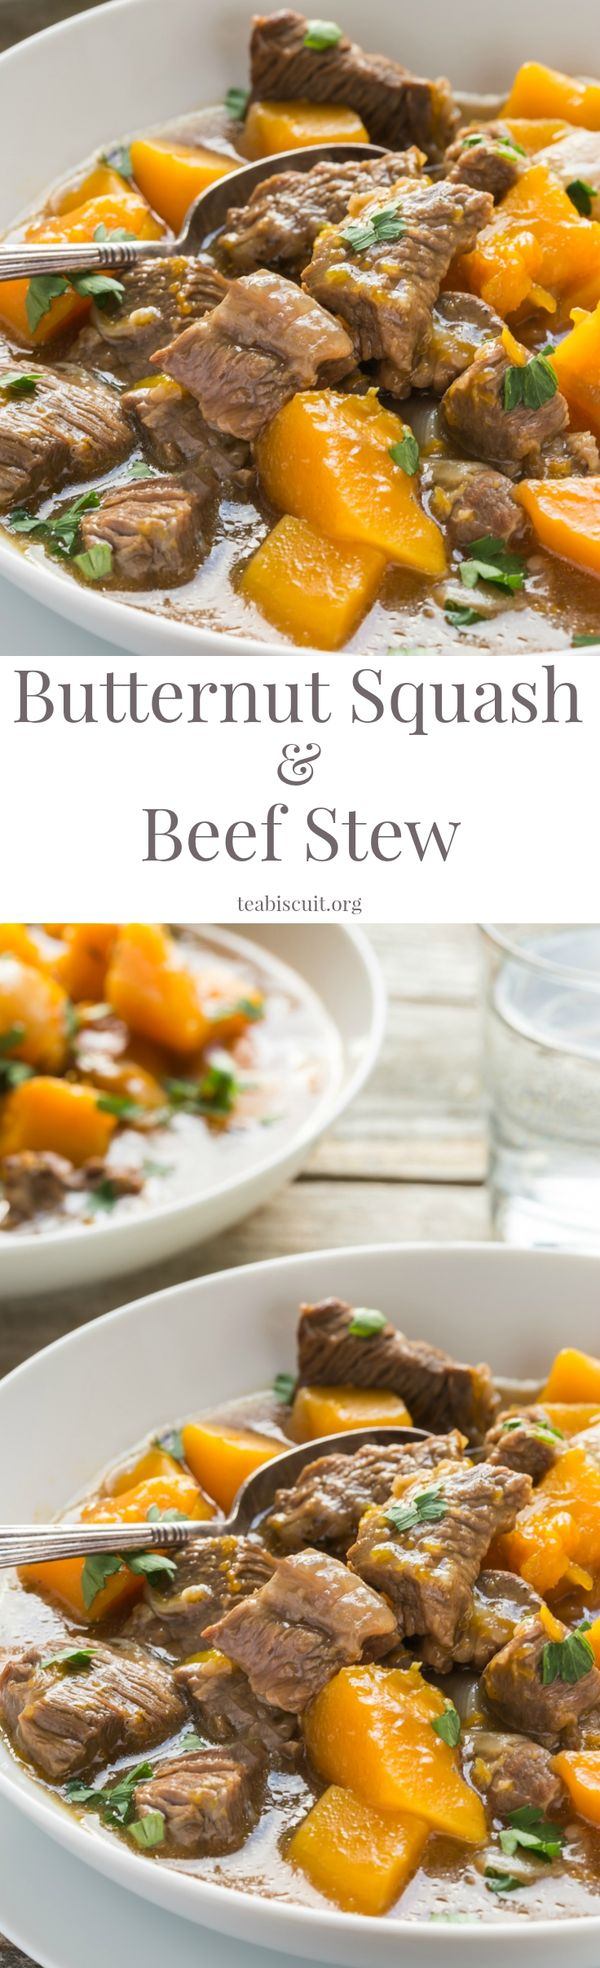 This Beef and Butternut Squash Stew is so easy to cook! Made from scratch in one pot with simple ingredients, it's a great tasting meal that your whole family will love!  low carb   paleo   gluten free   primal  